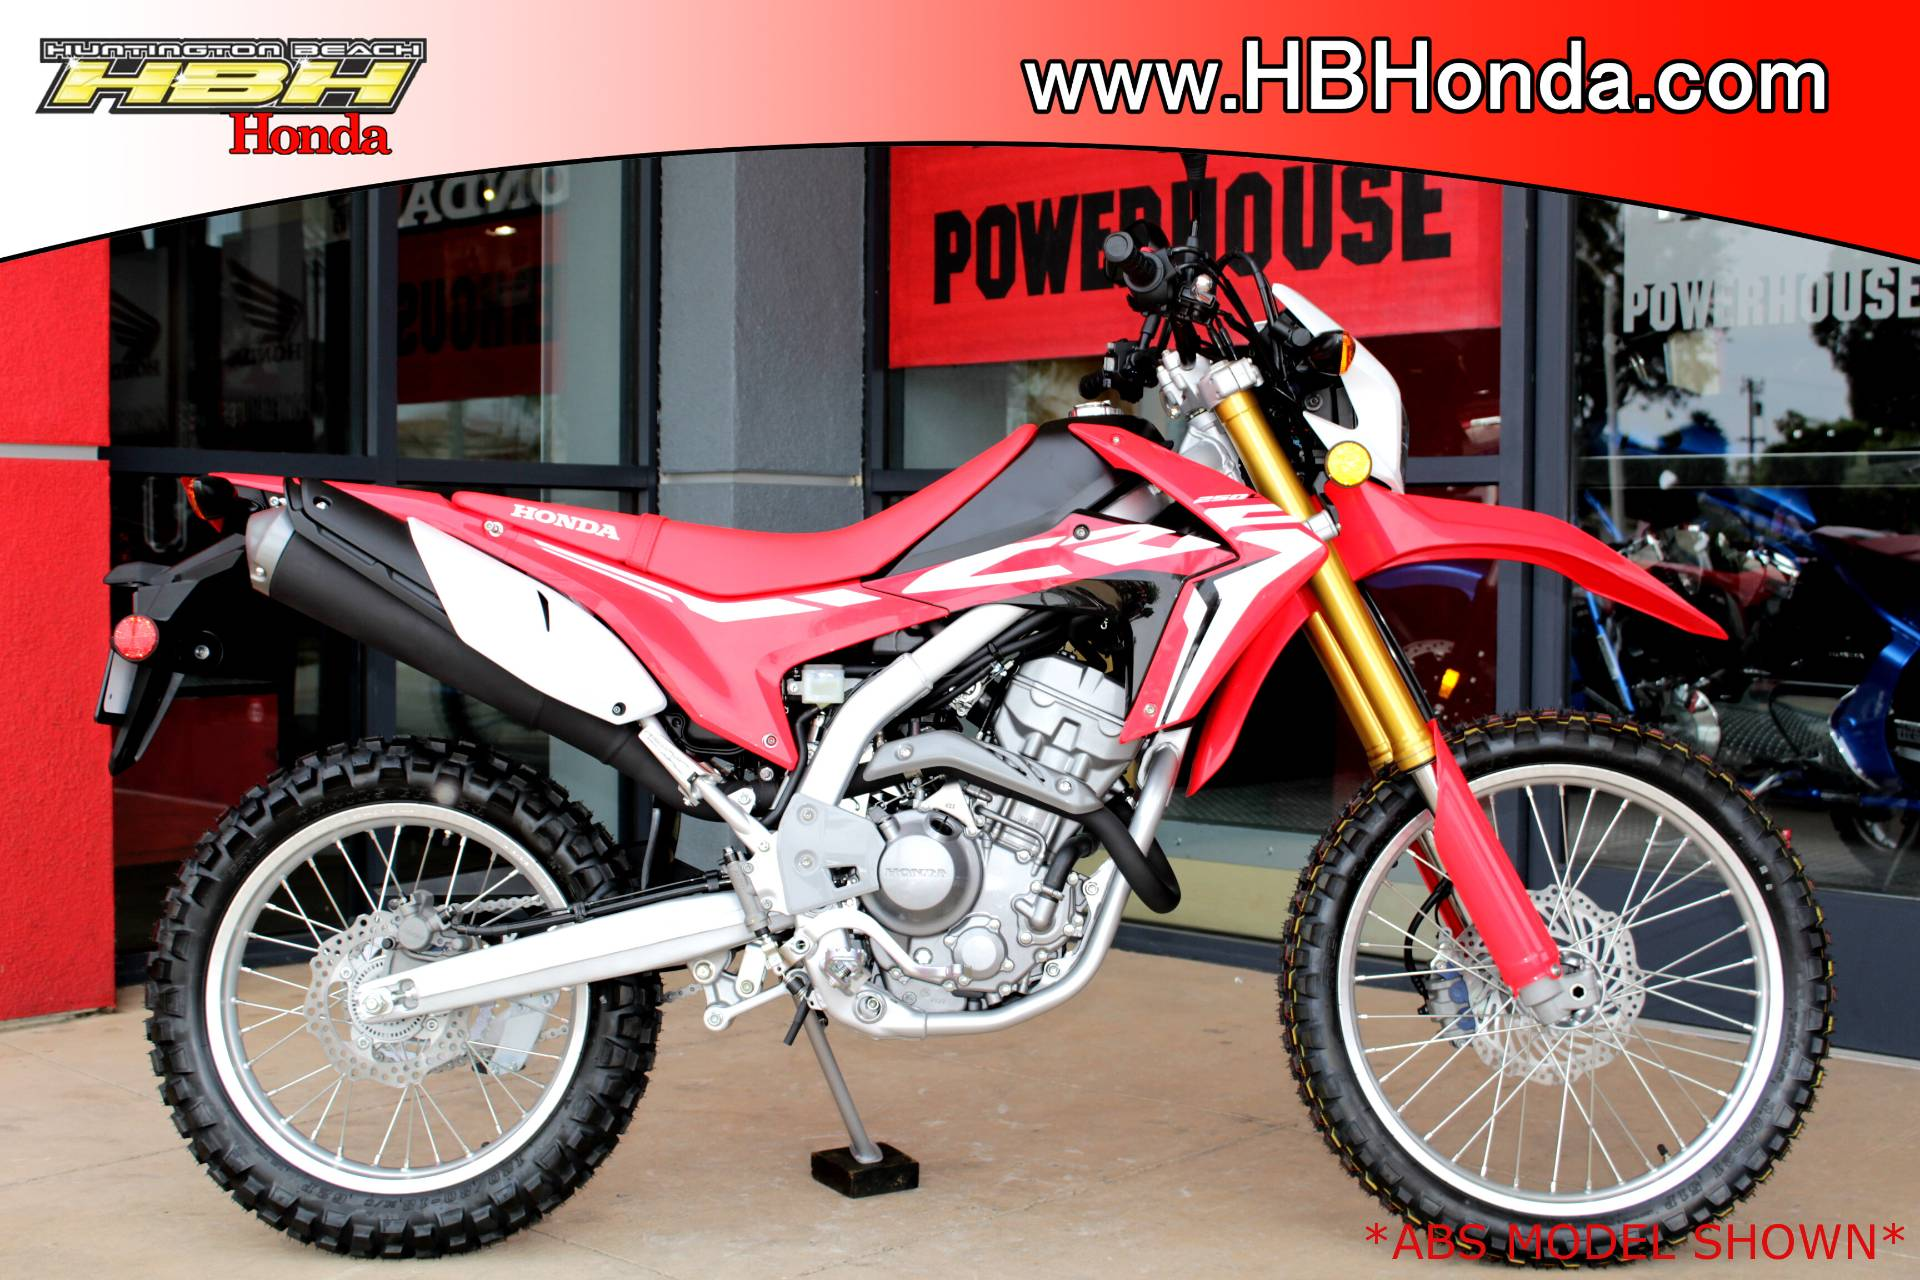 New 2017 Honda Crf250l Motorcycles For Sale In Huntington Beach Ca